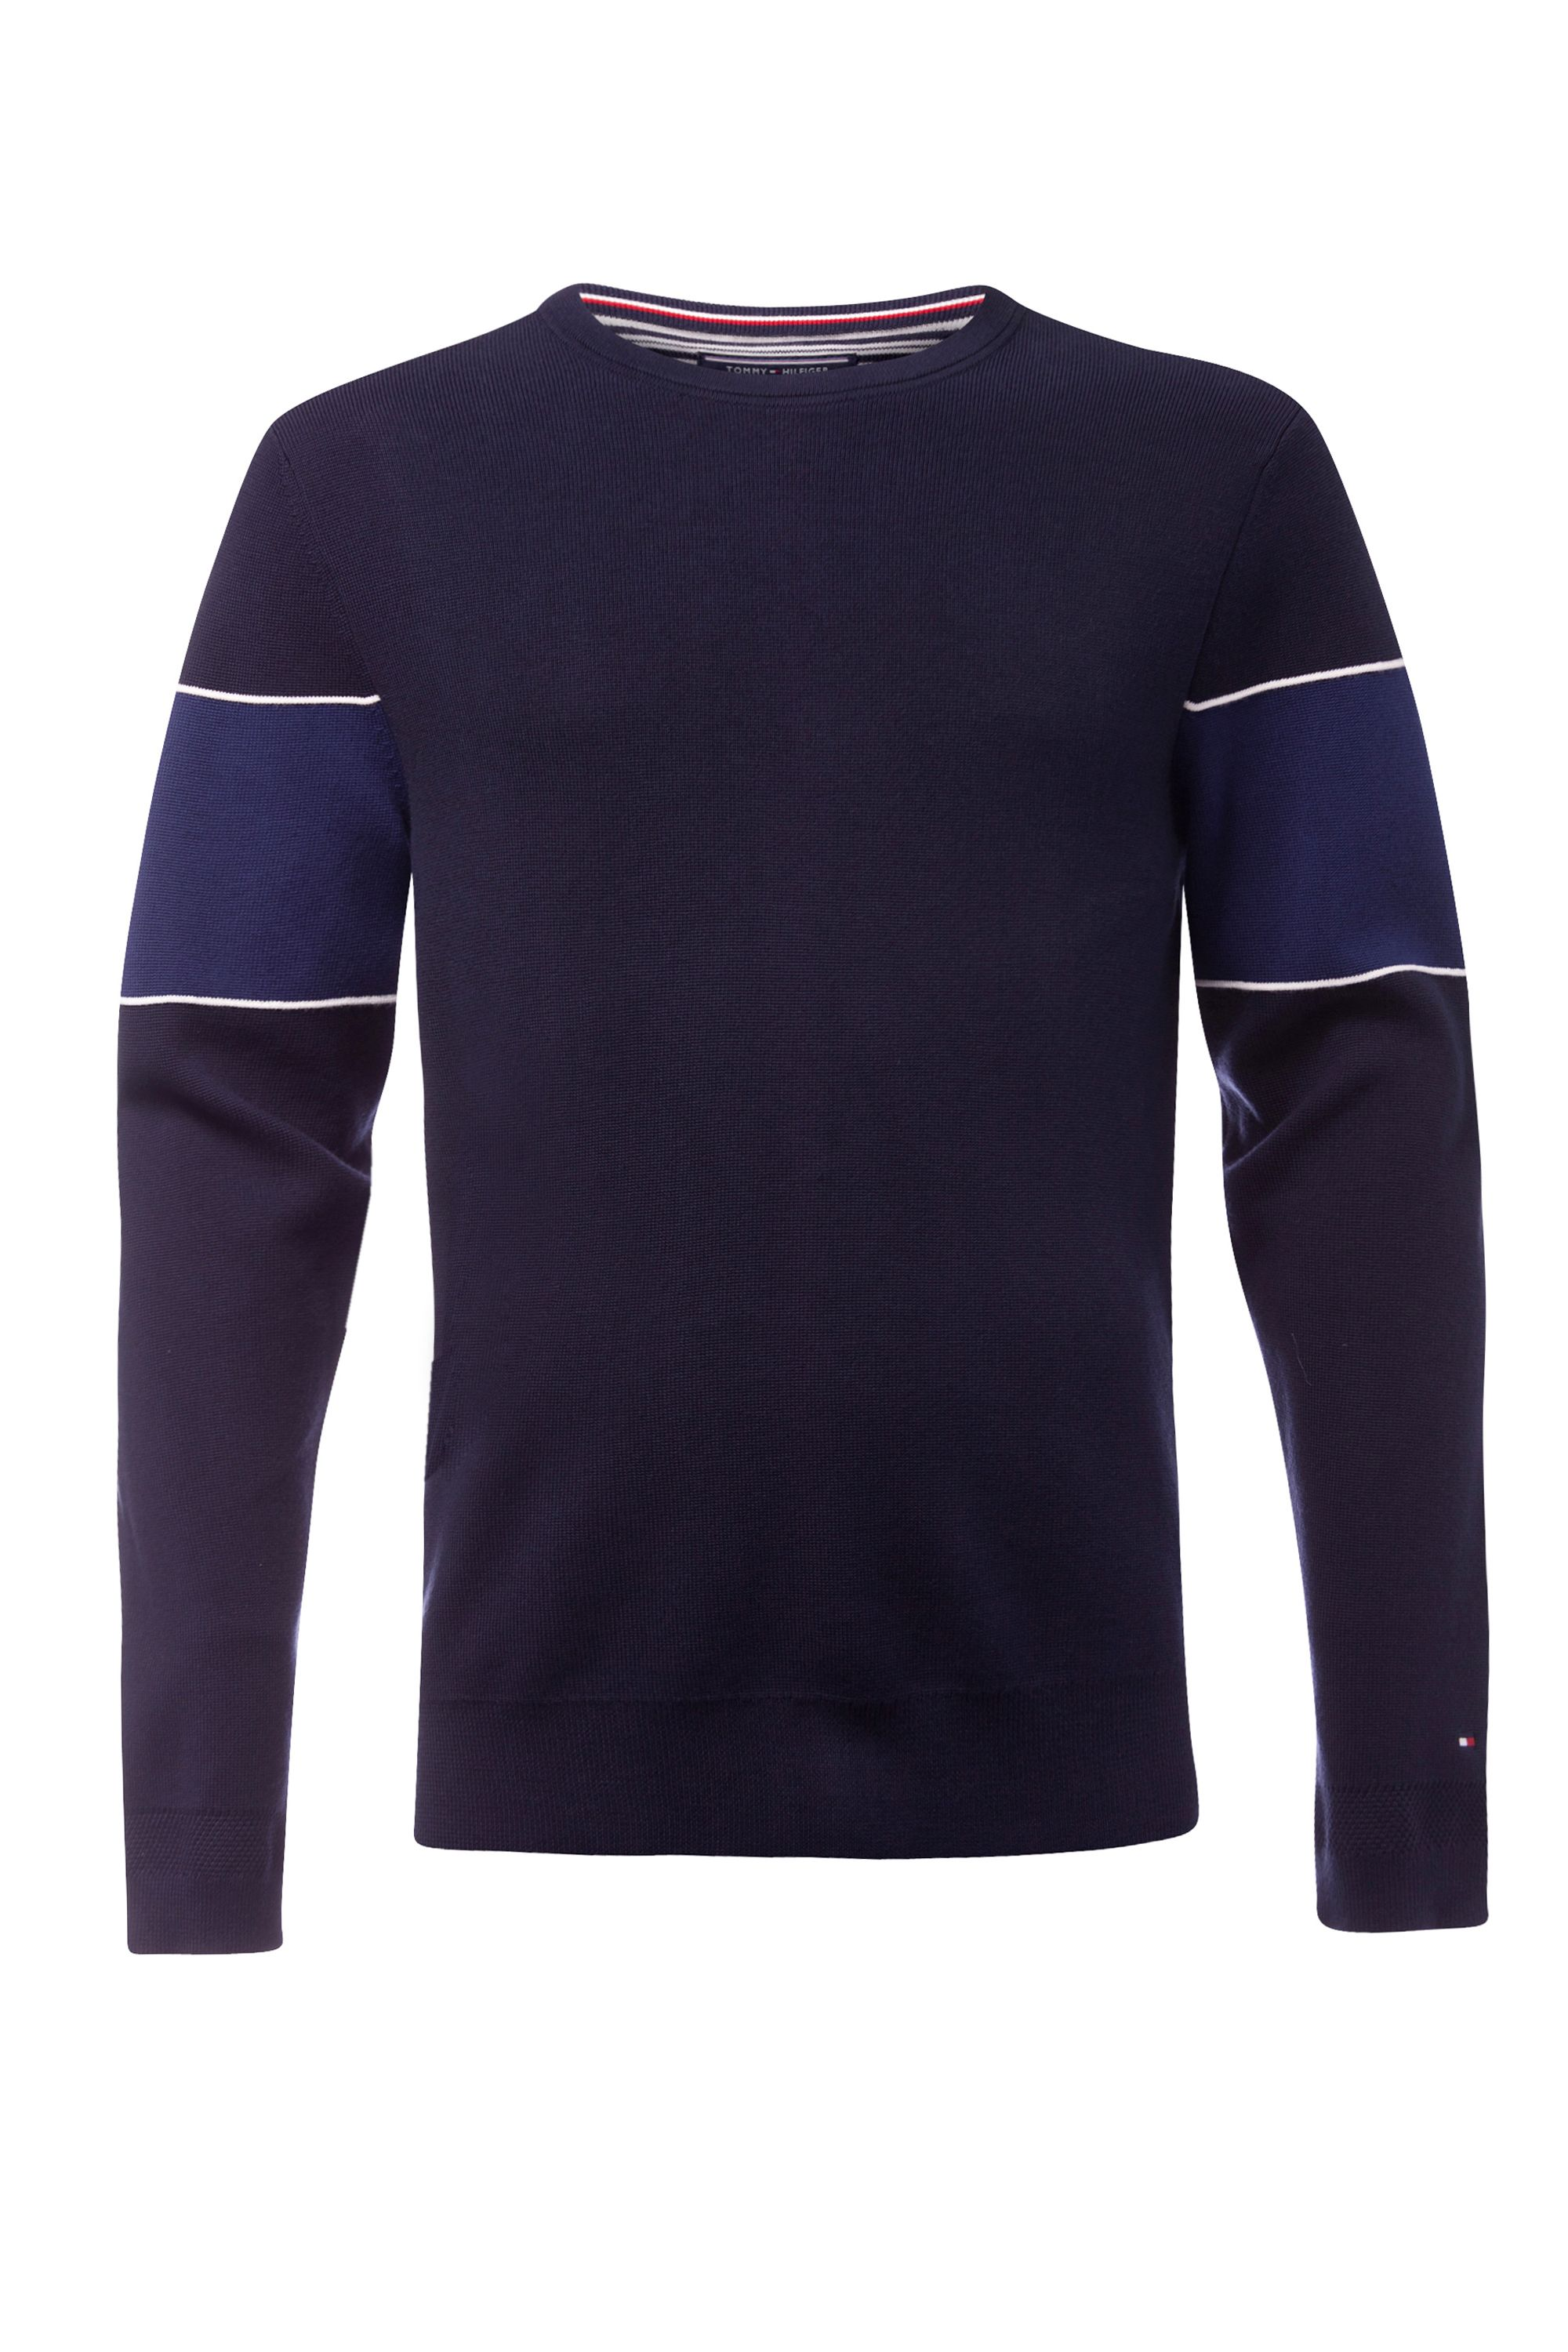 Men's Tommy Hilfiger Striped sleeve sweater, Midnight